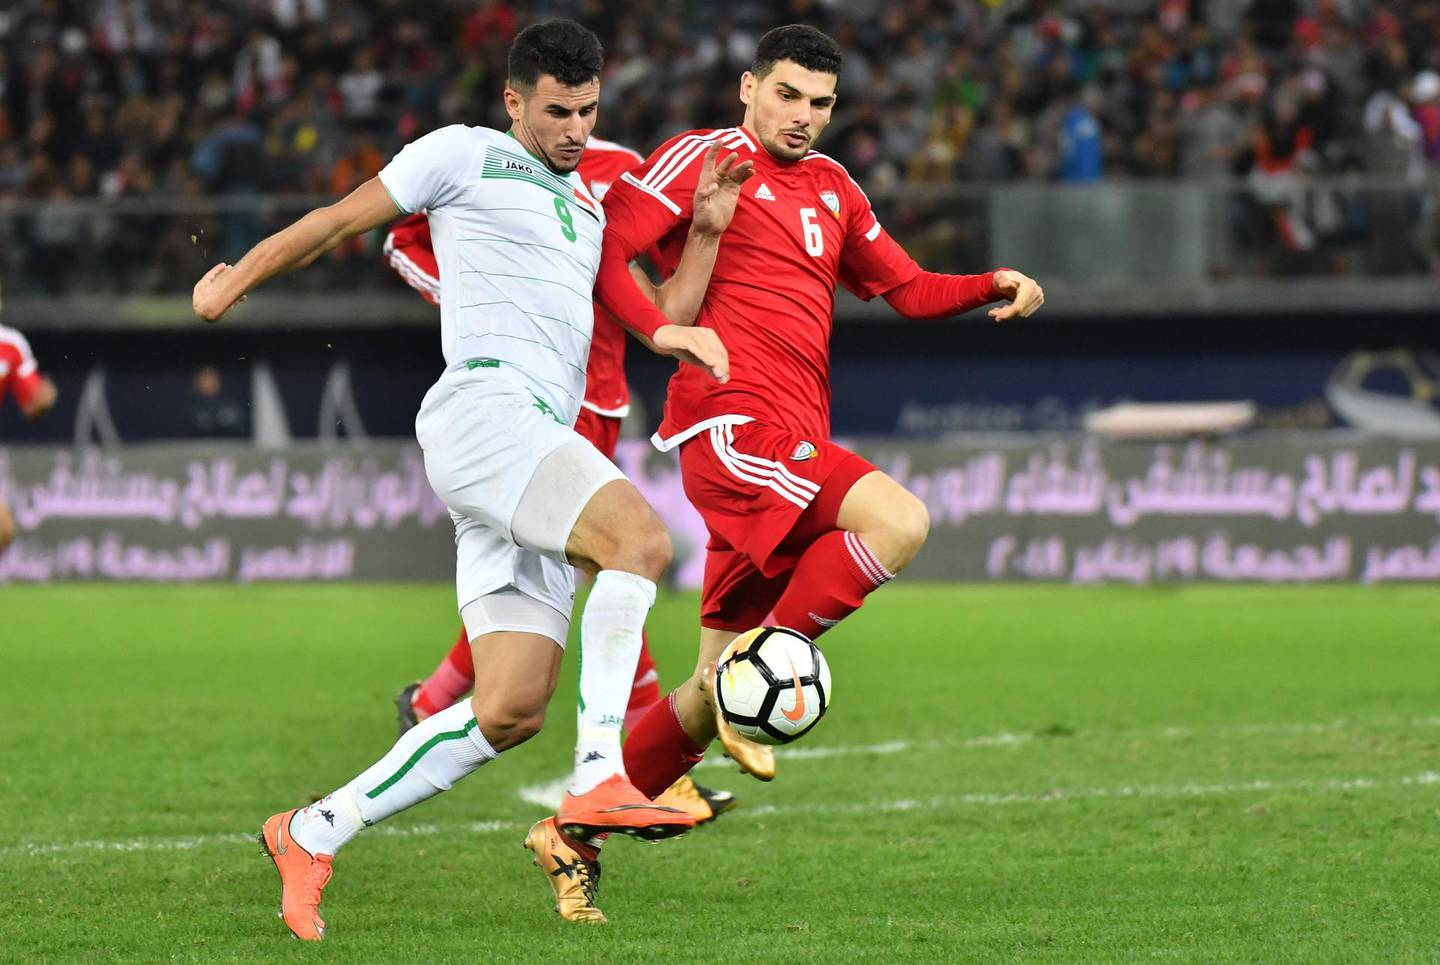 UAE's Mohanad Salem (R) fights for the ball against Iraq's Aymen Hussein during the 2017 Gulf Cup of Nations semi-final football match between Iraq and UAE at the Sheikh Jaber al-Ahmad Stadium in Kuwait City on January 2, 2018.  / AFP PHOTO / GIUSEPPE CACACE